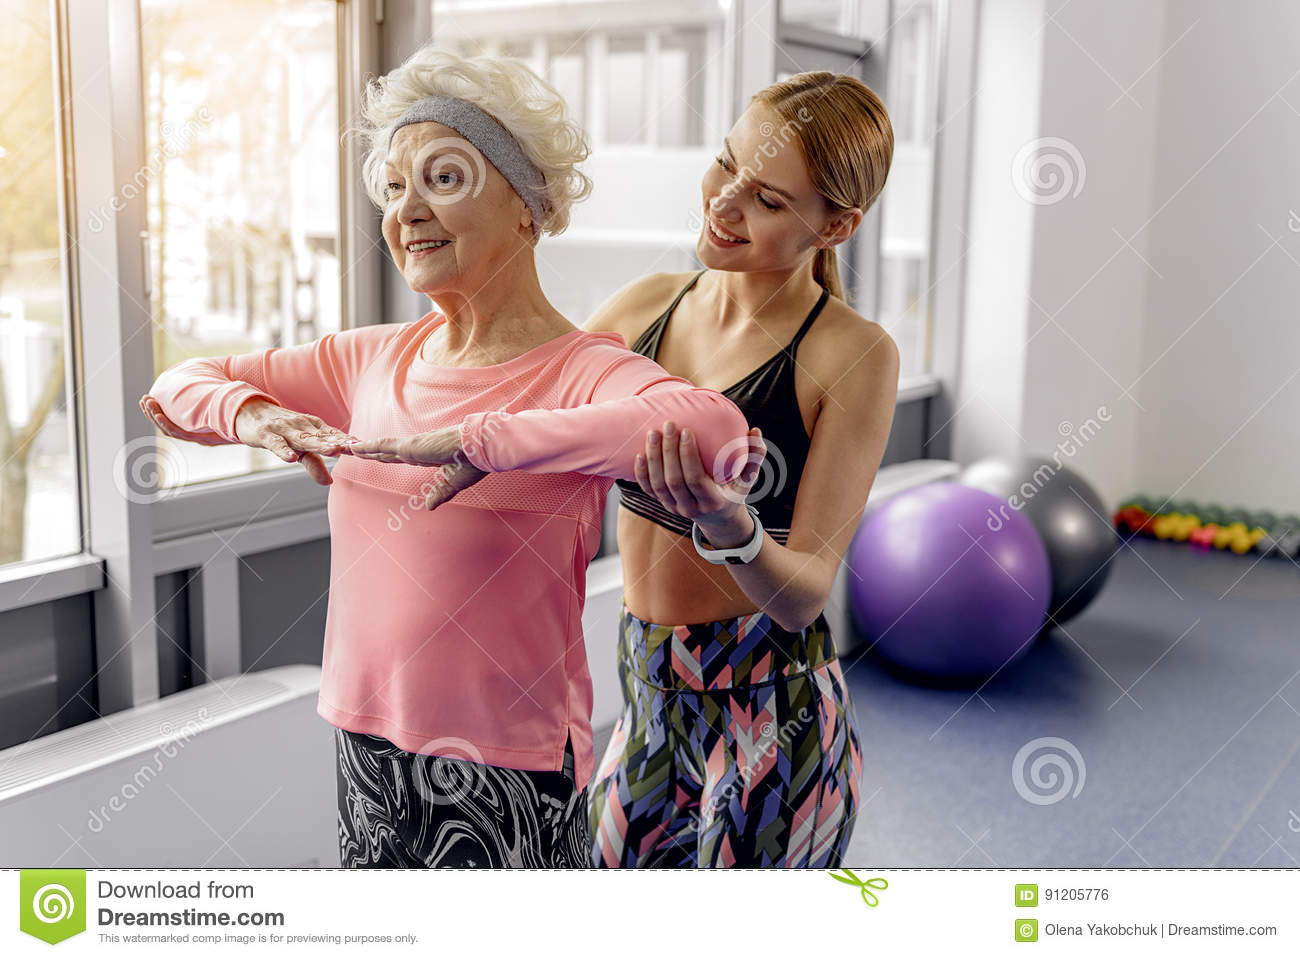 Smiling granny doing exercises with trainer